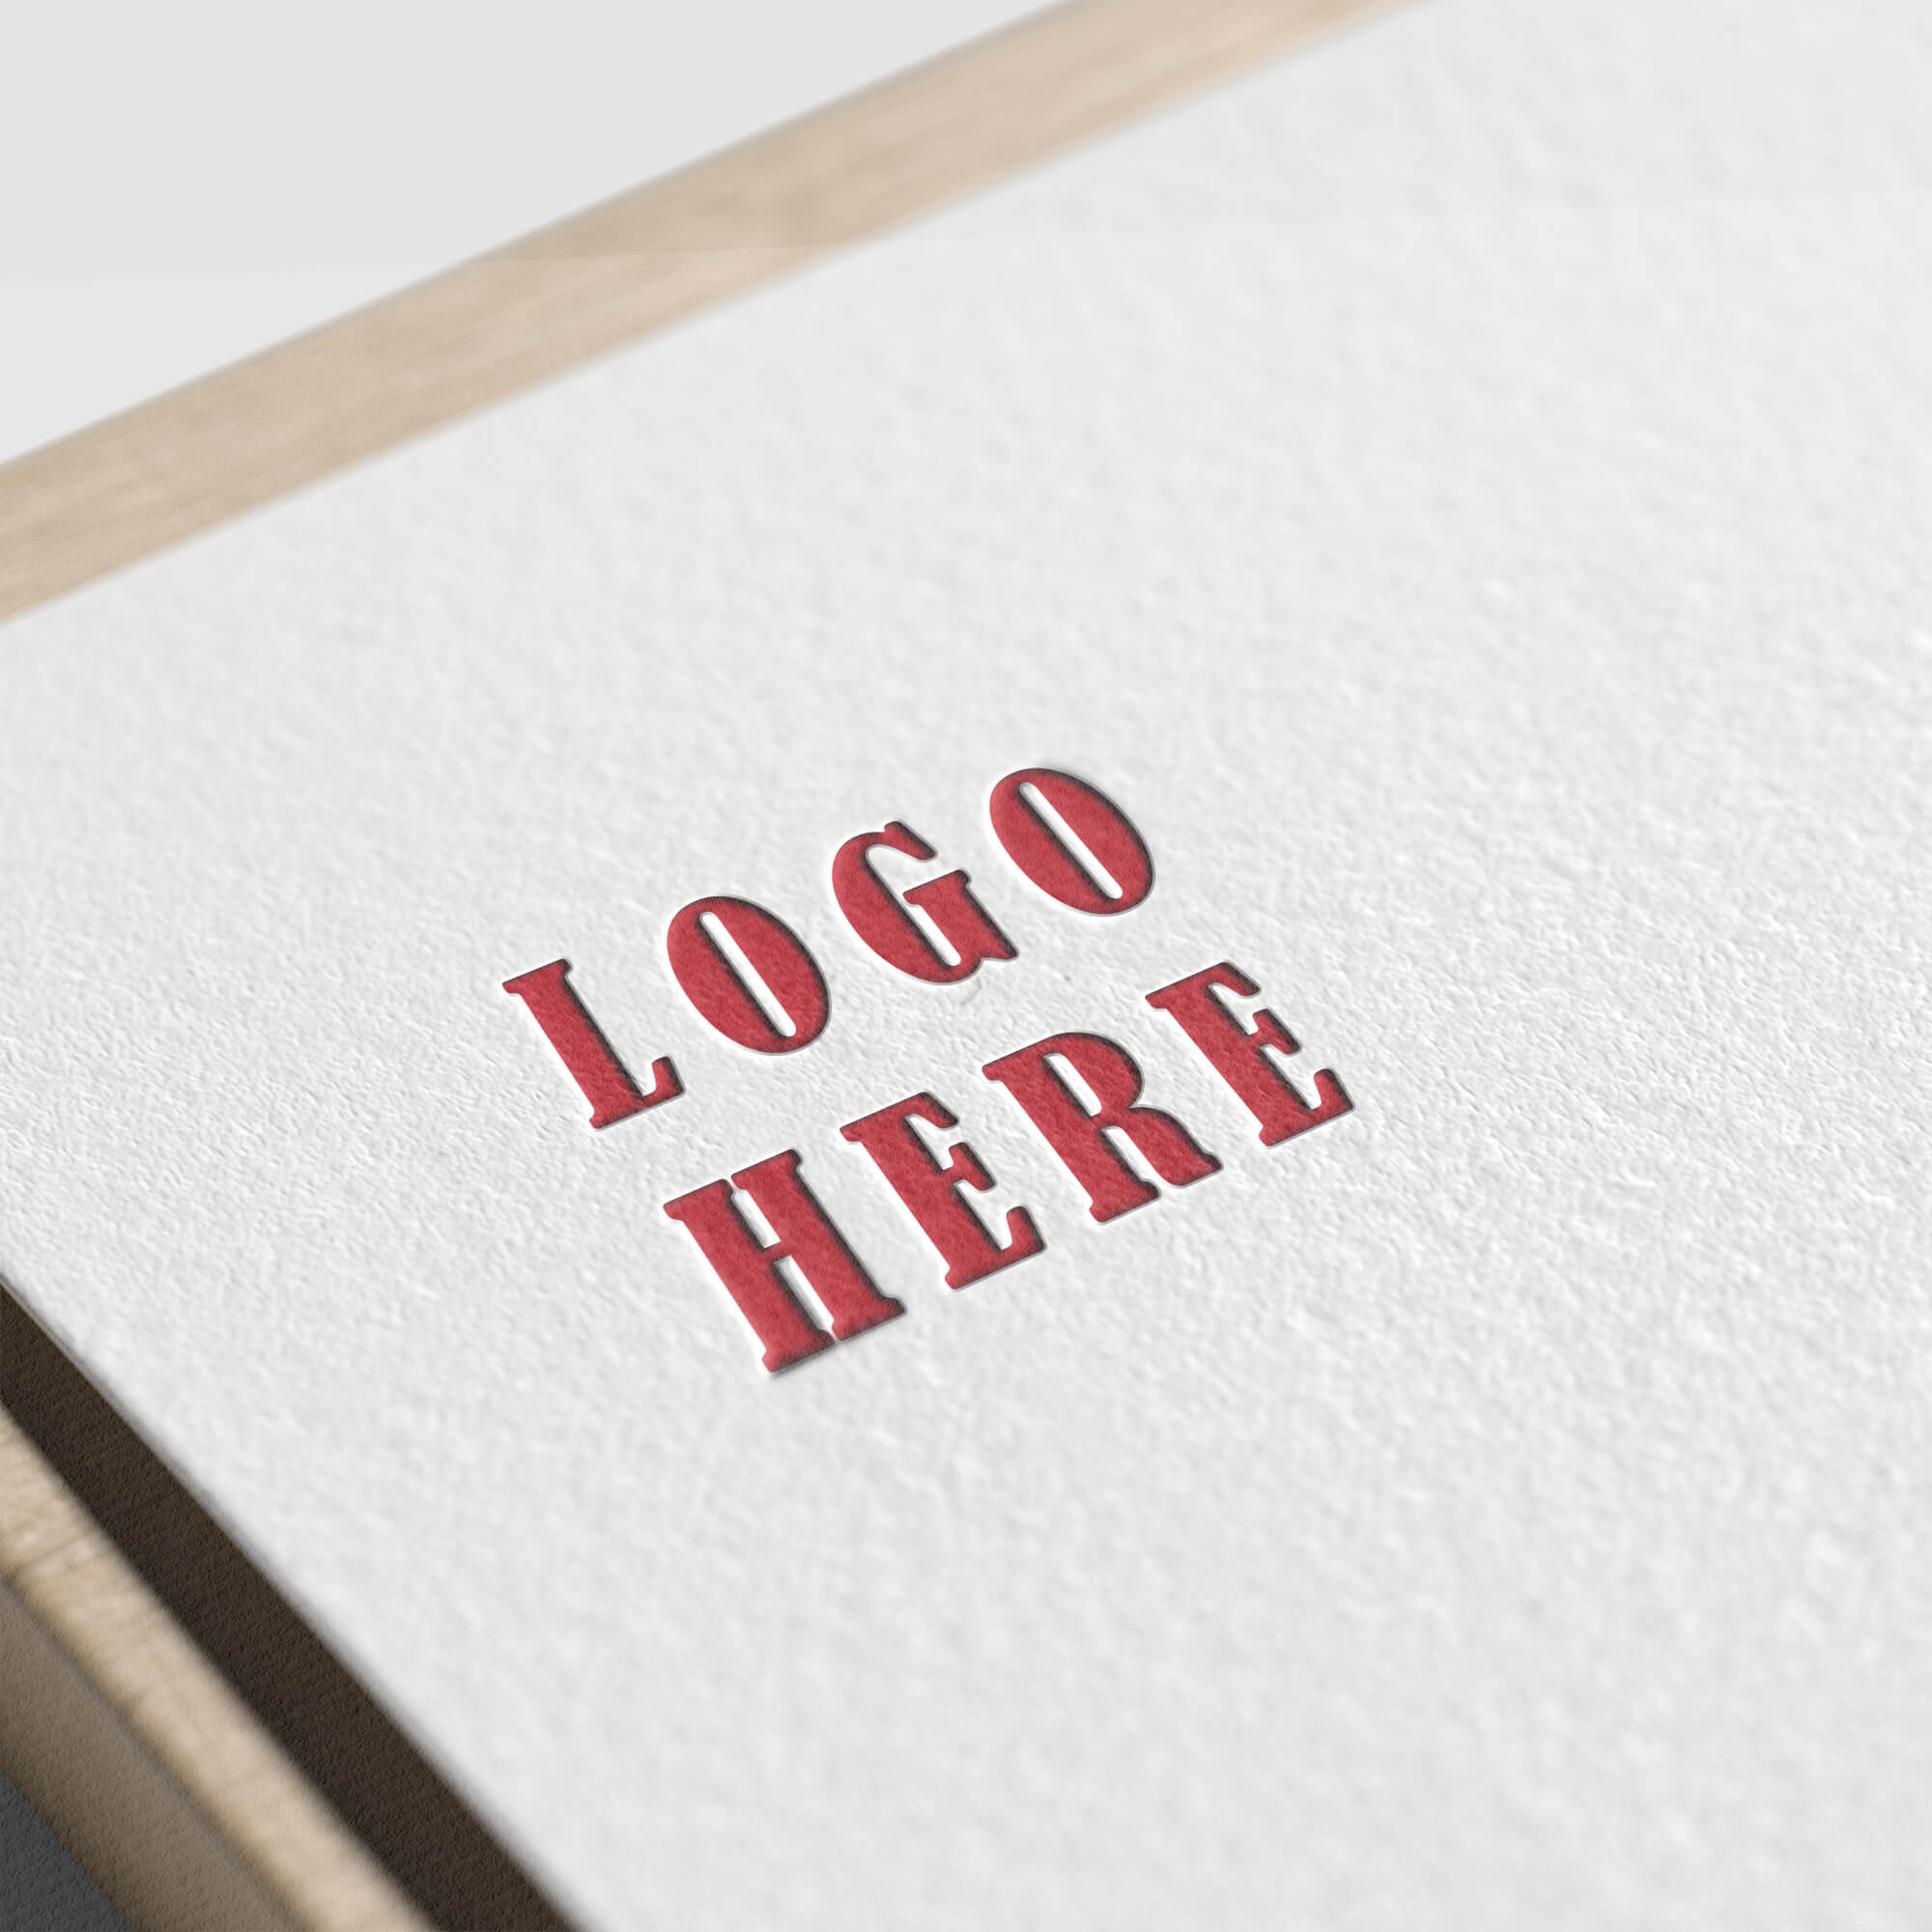 Free Paper Logo Mockup PSD Template (3)